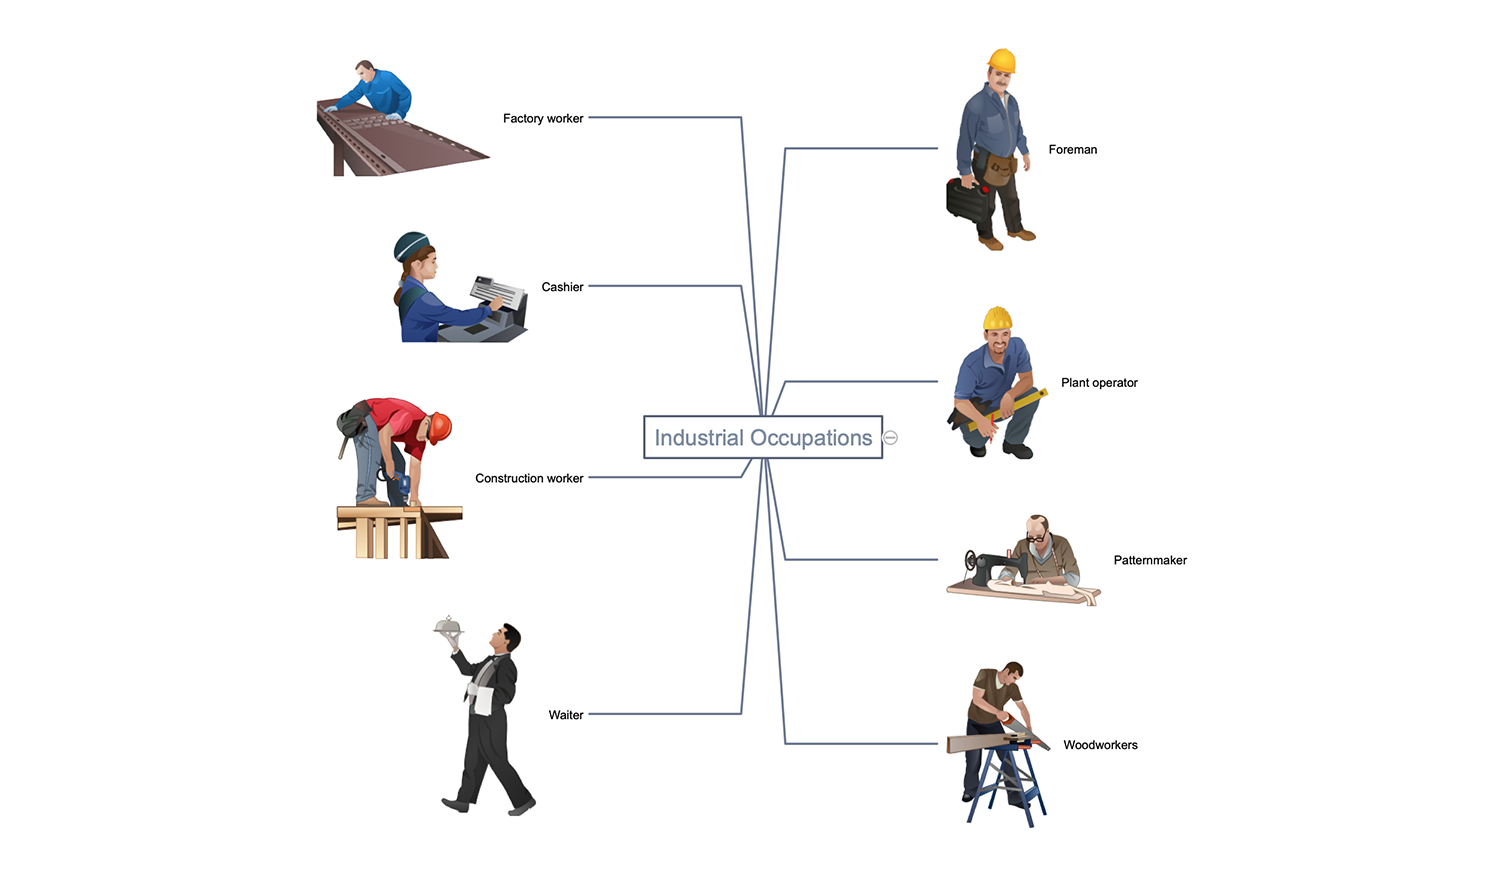 Industrial Occupations